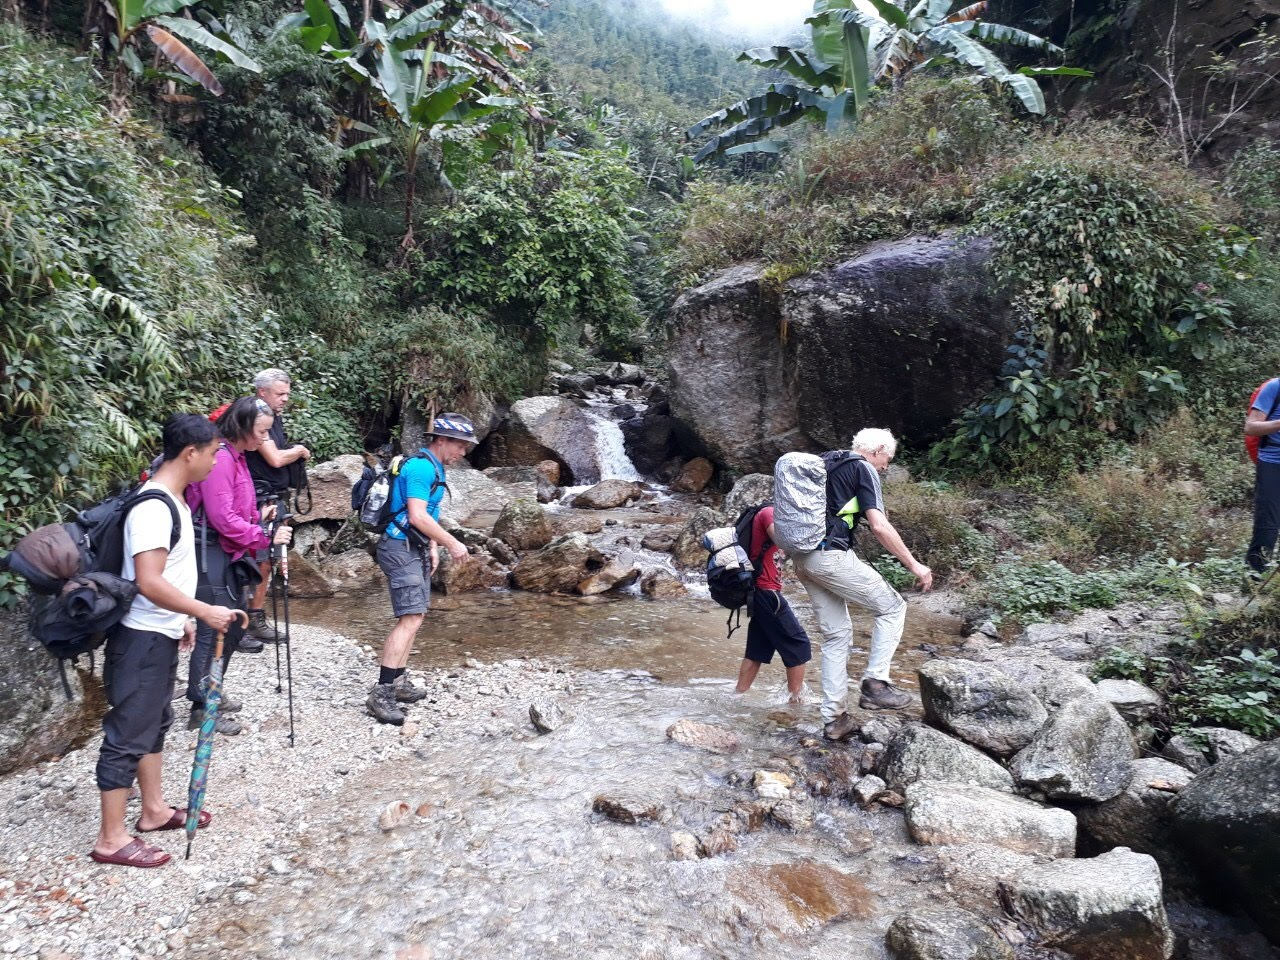 10 DAYS - MIRACLE HA GIANG TREKKING TRIP